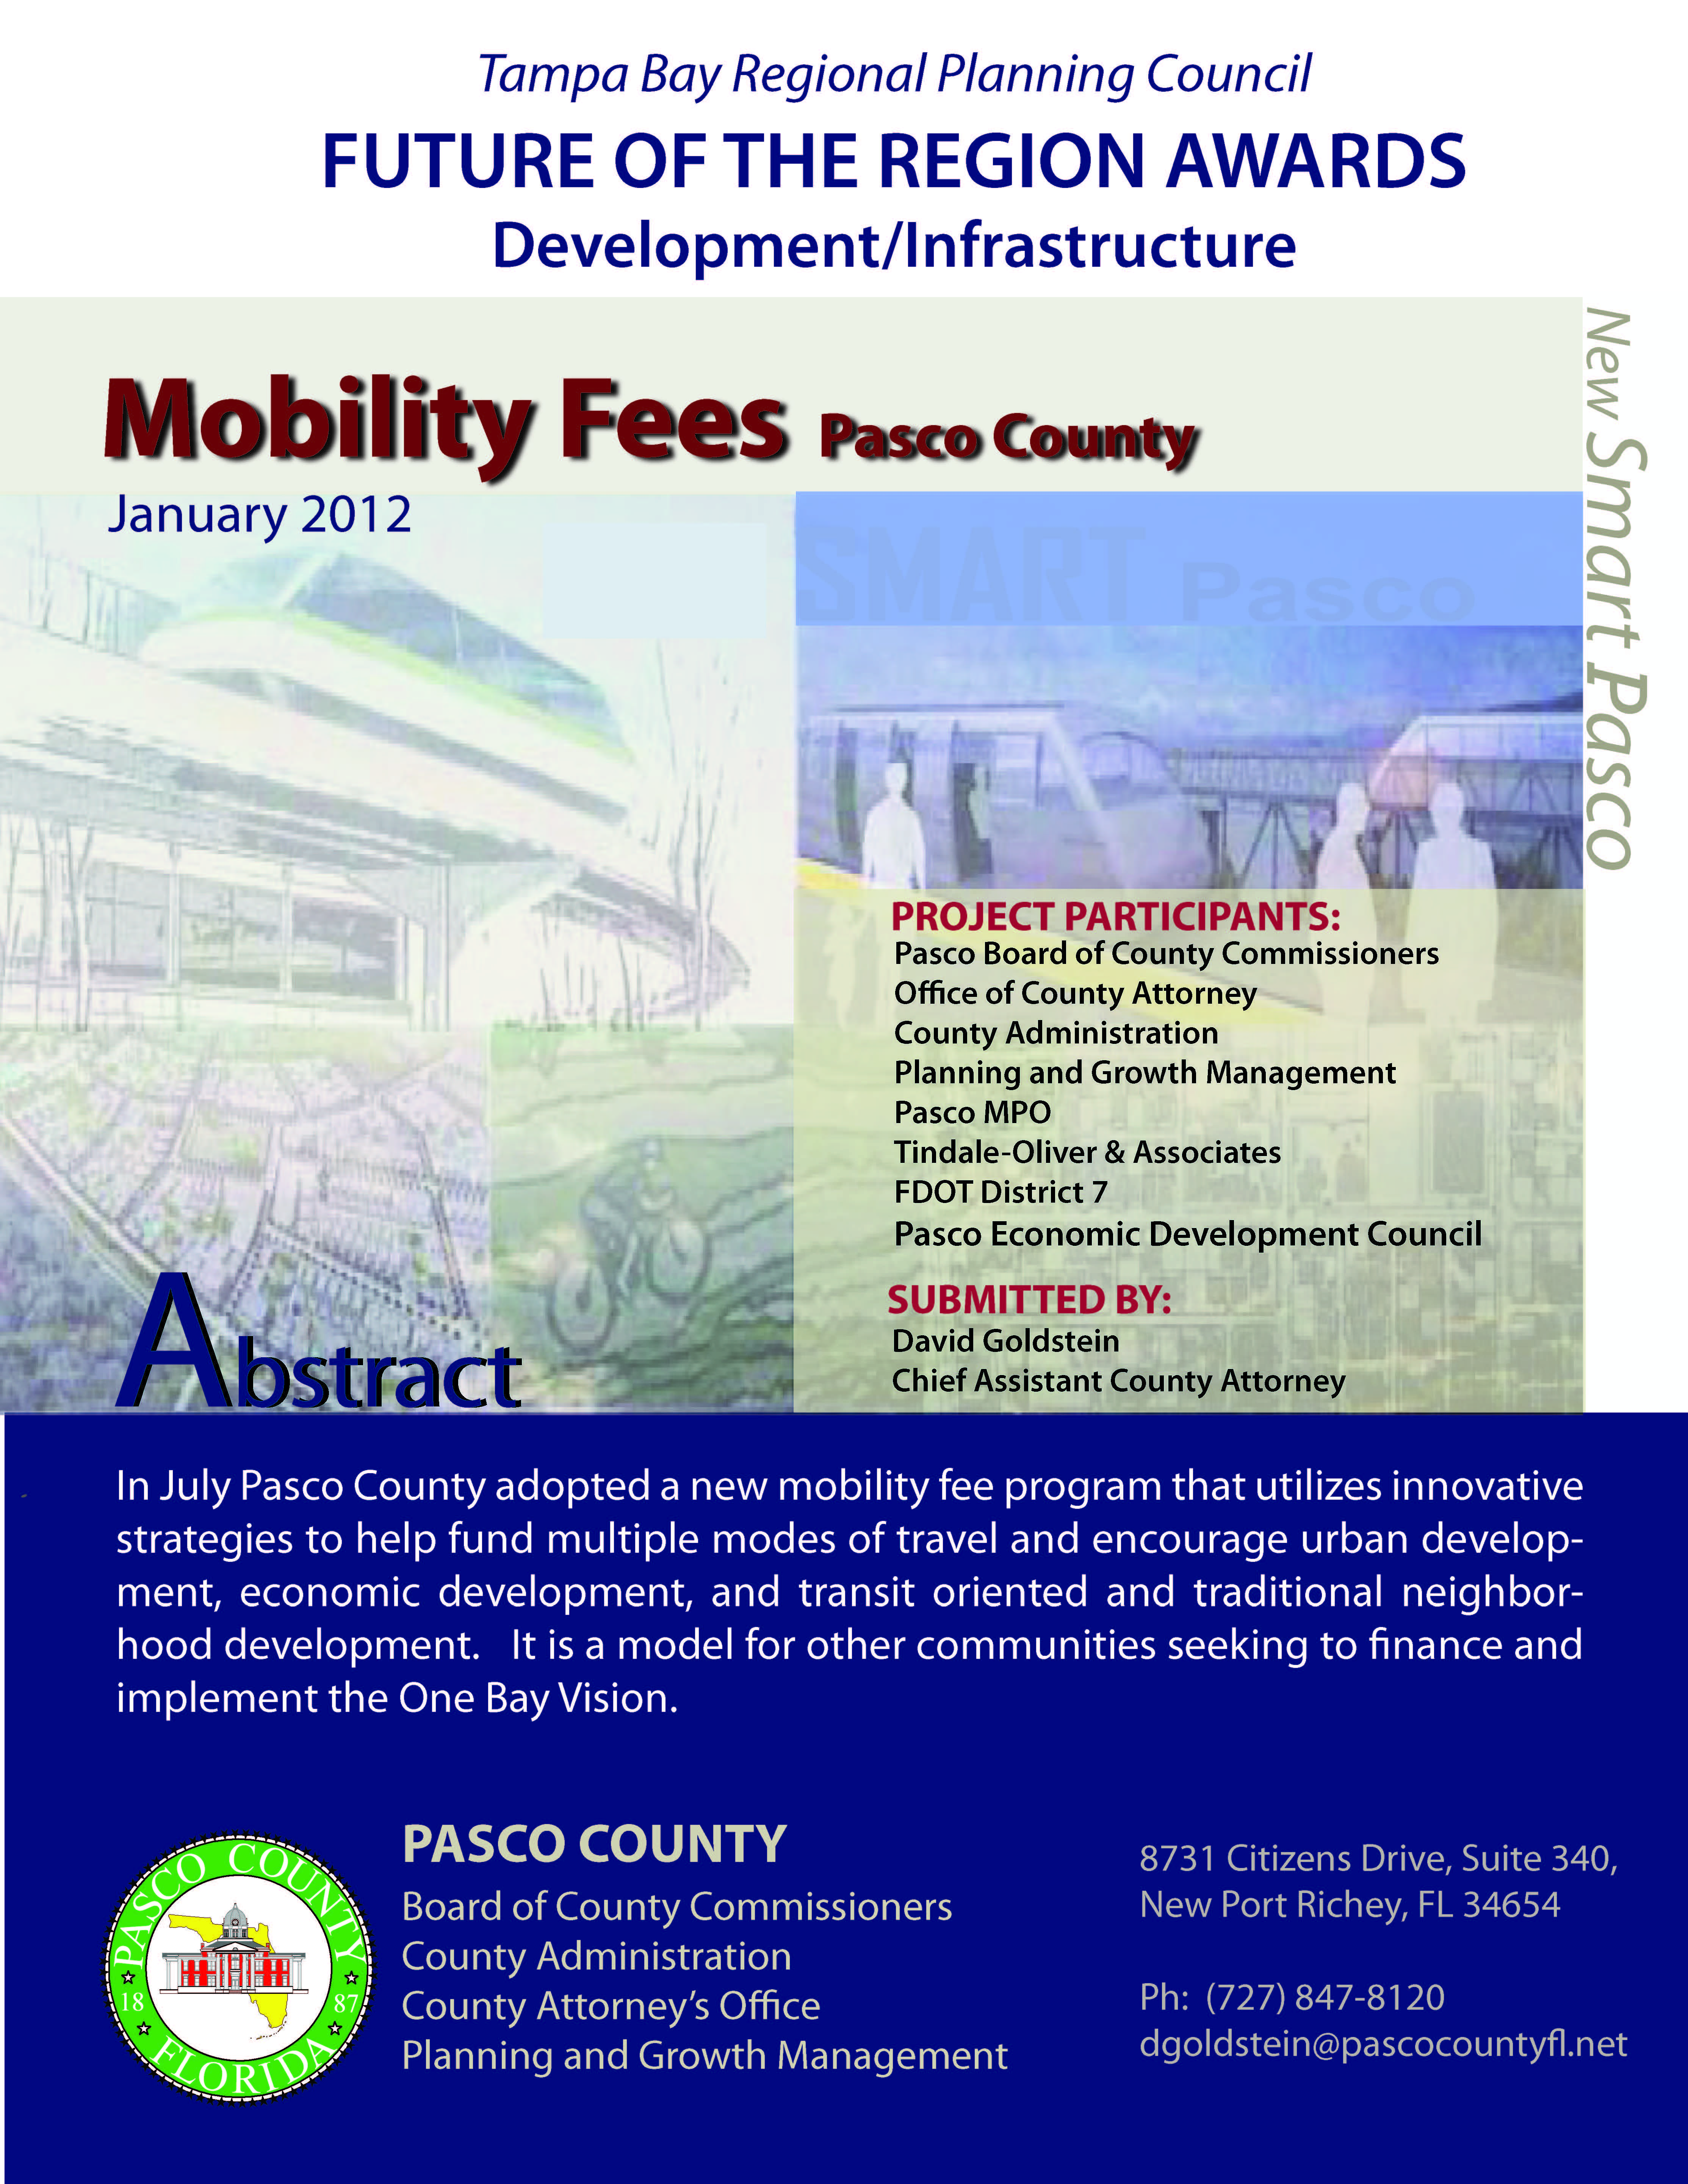 Mobility Fees Pasco County